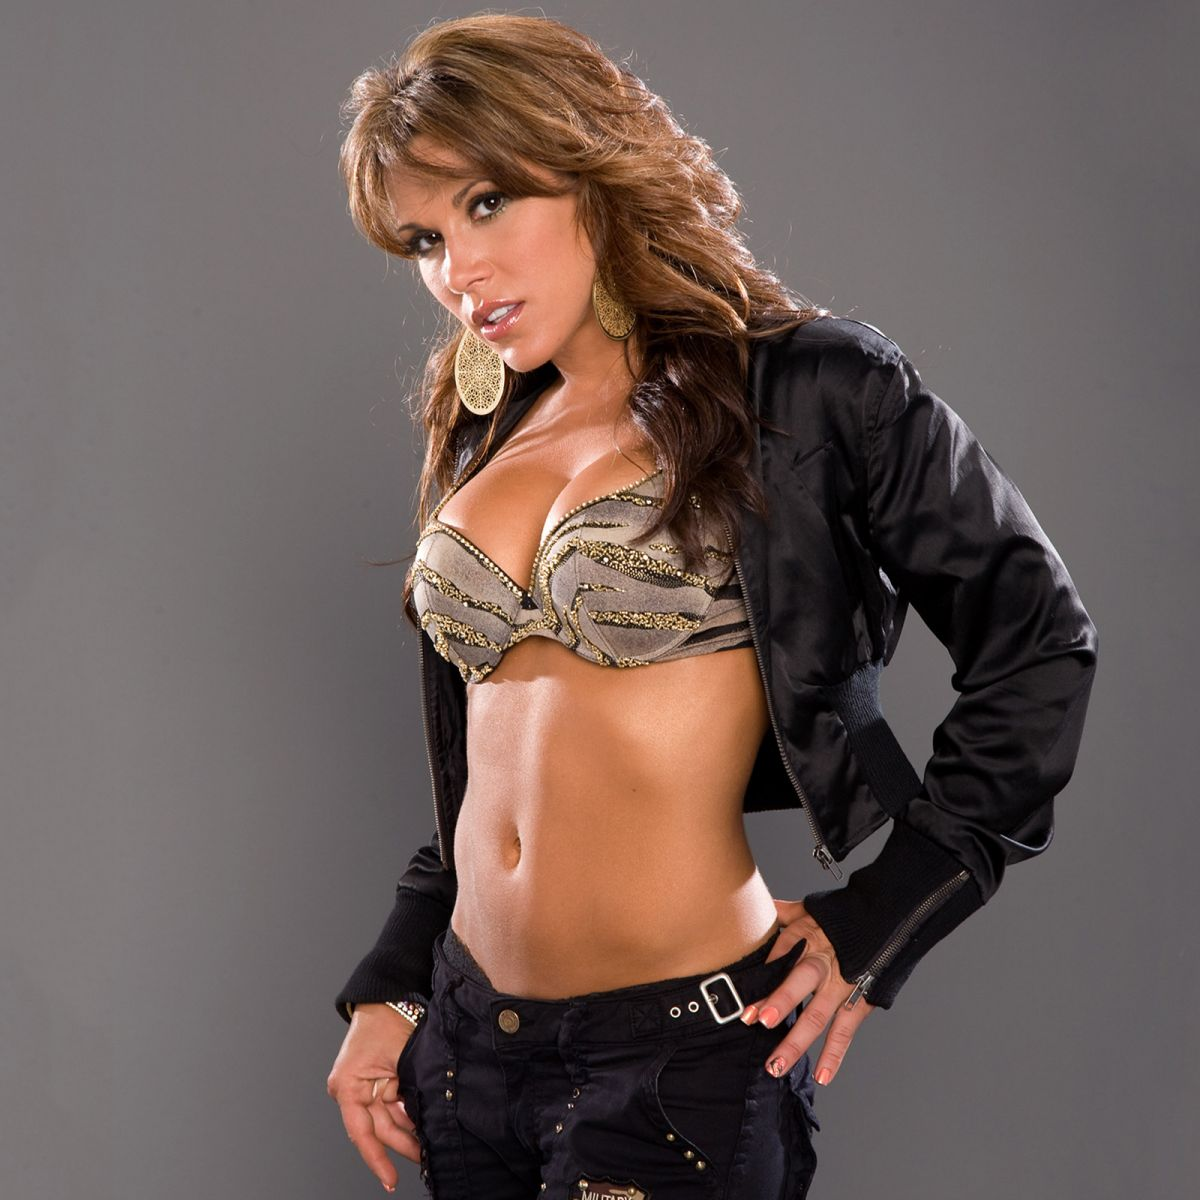 Wwe Diva Mickie James Nude